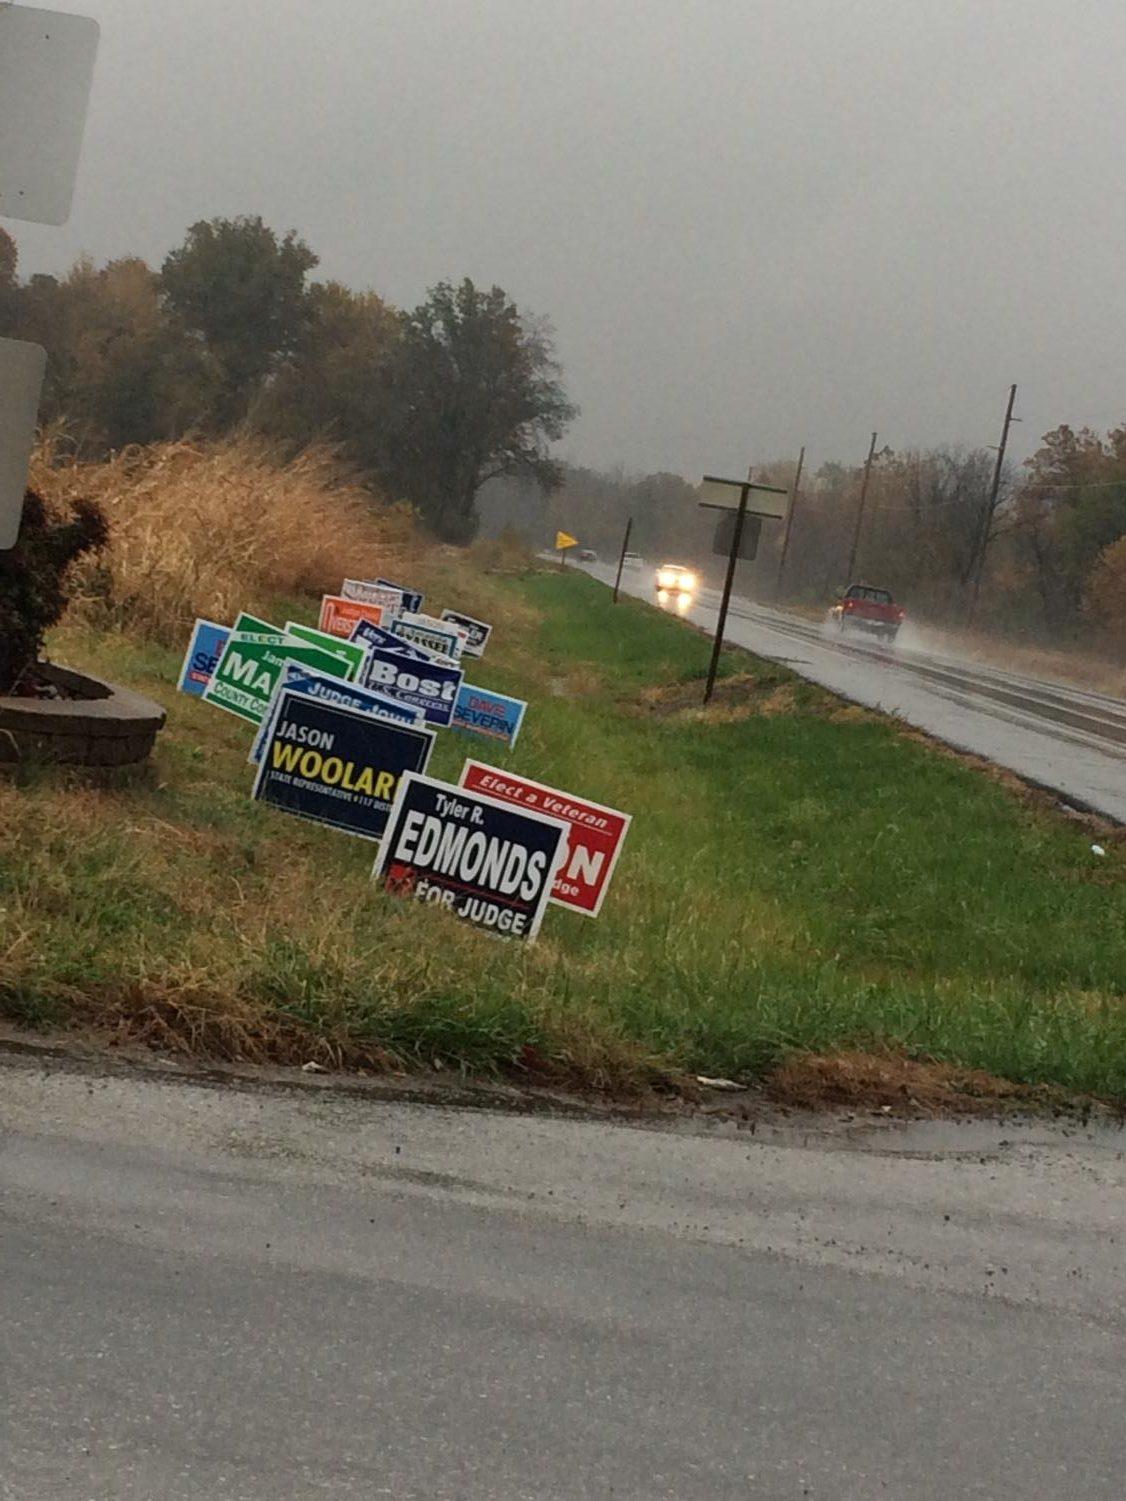 Rain or Shine Get Out and Vote!